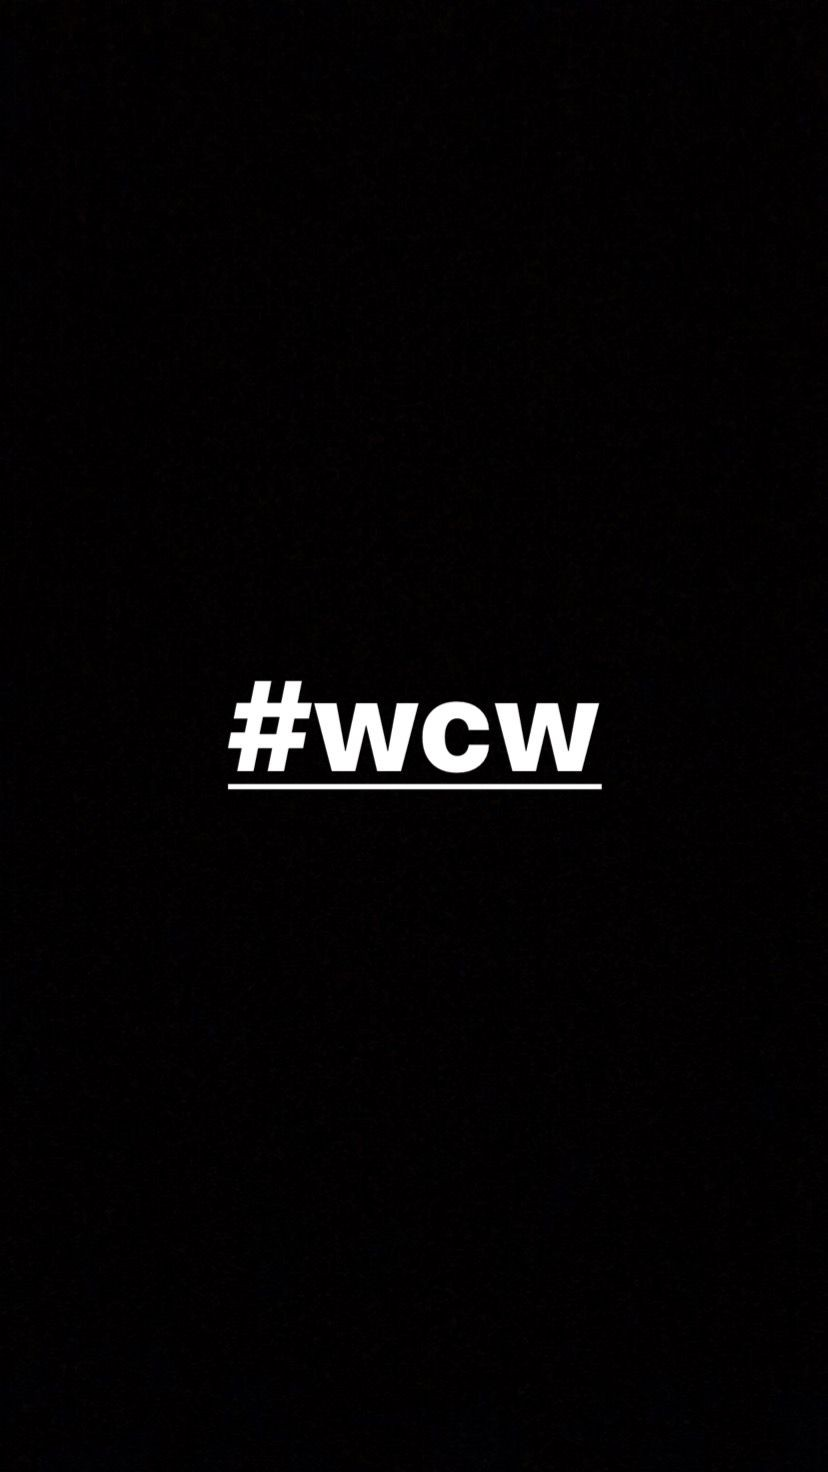 Wcw Wcw Quotes